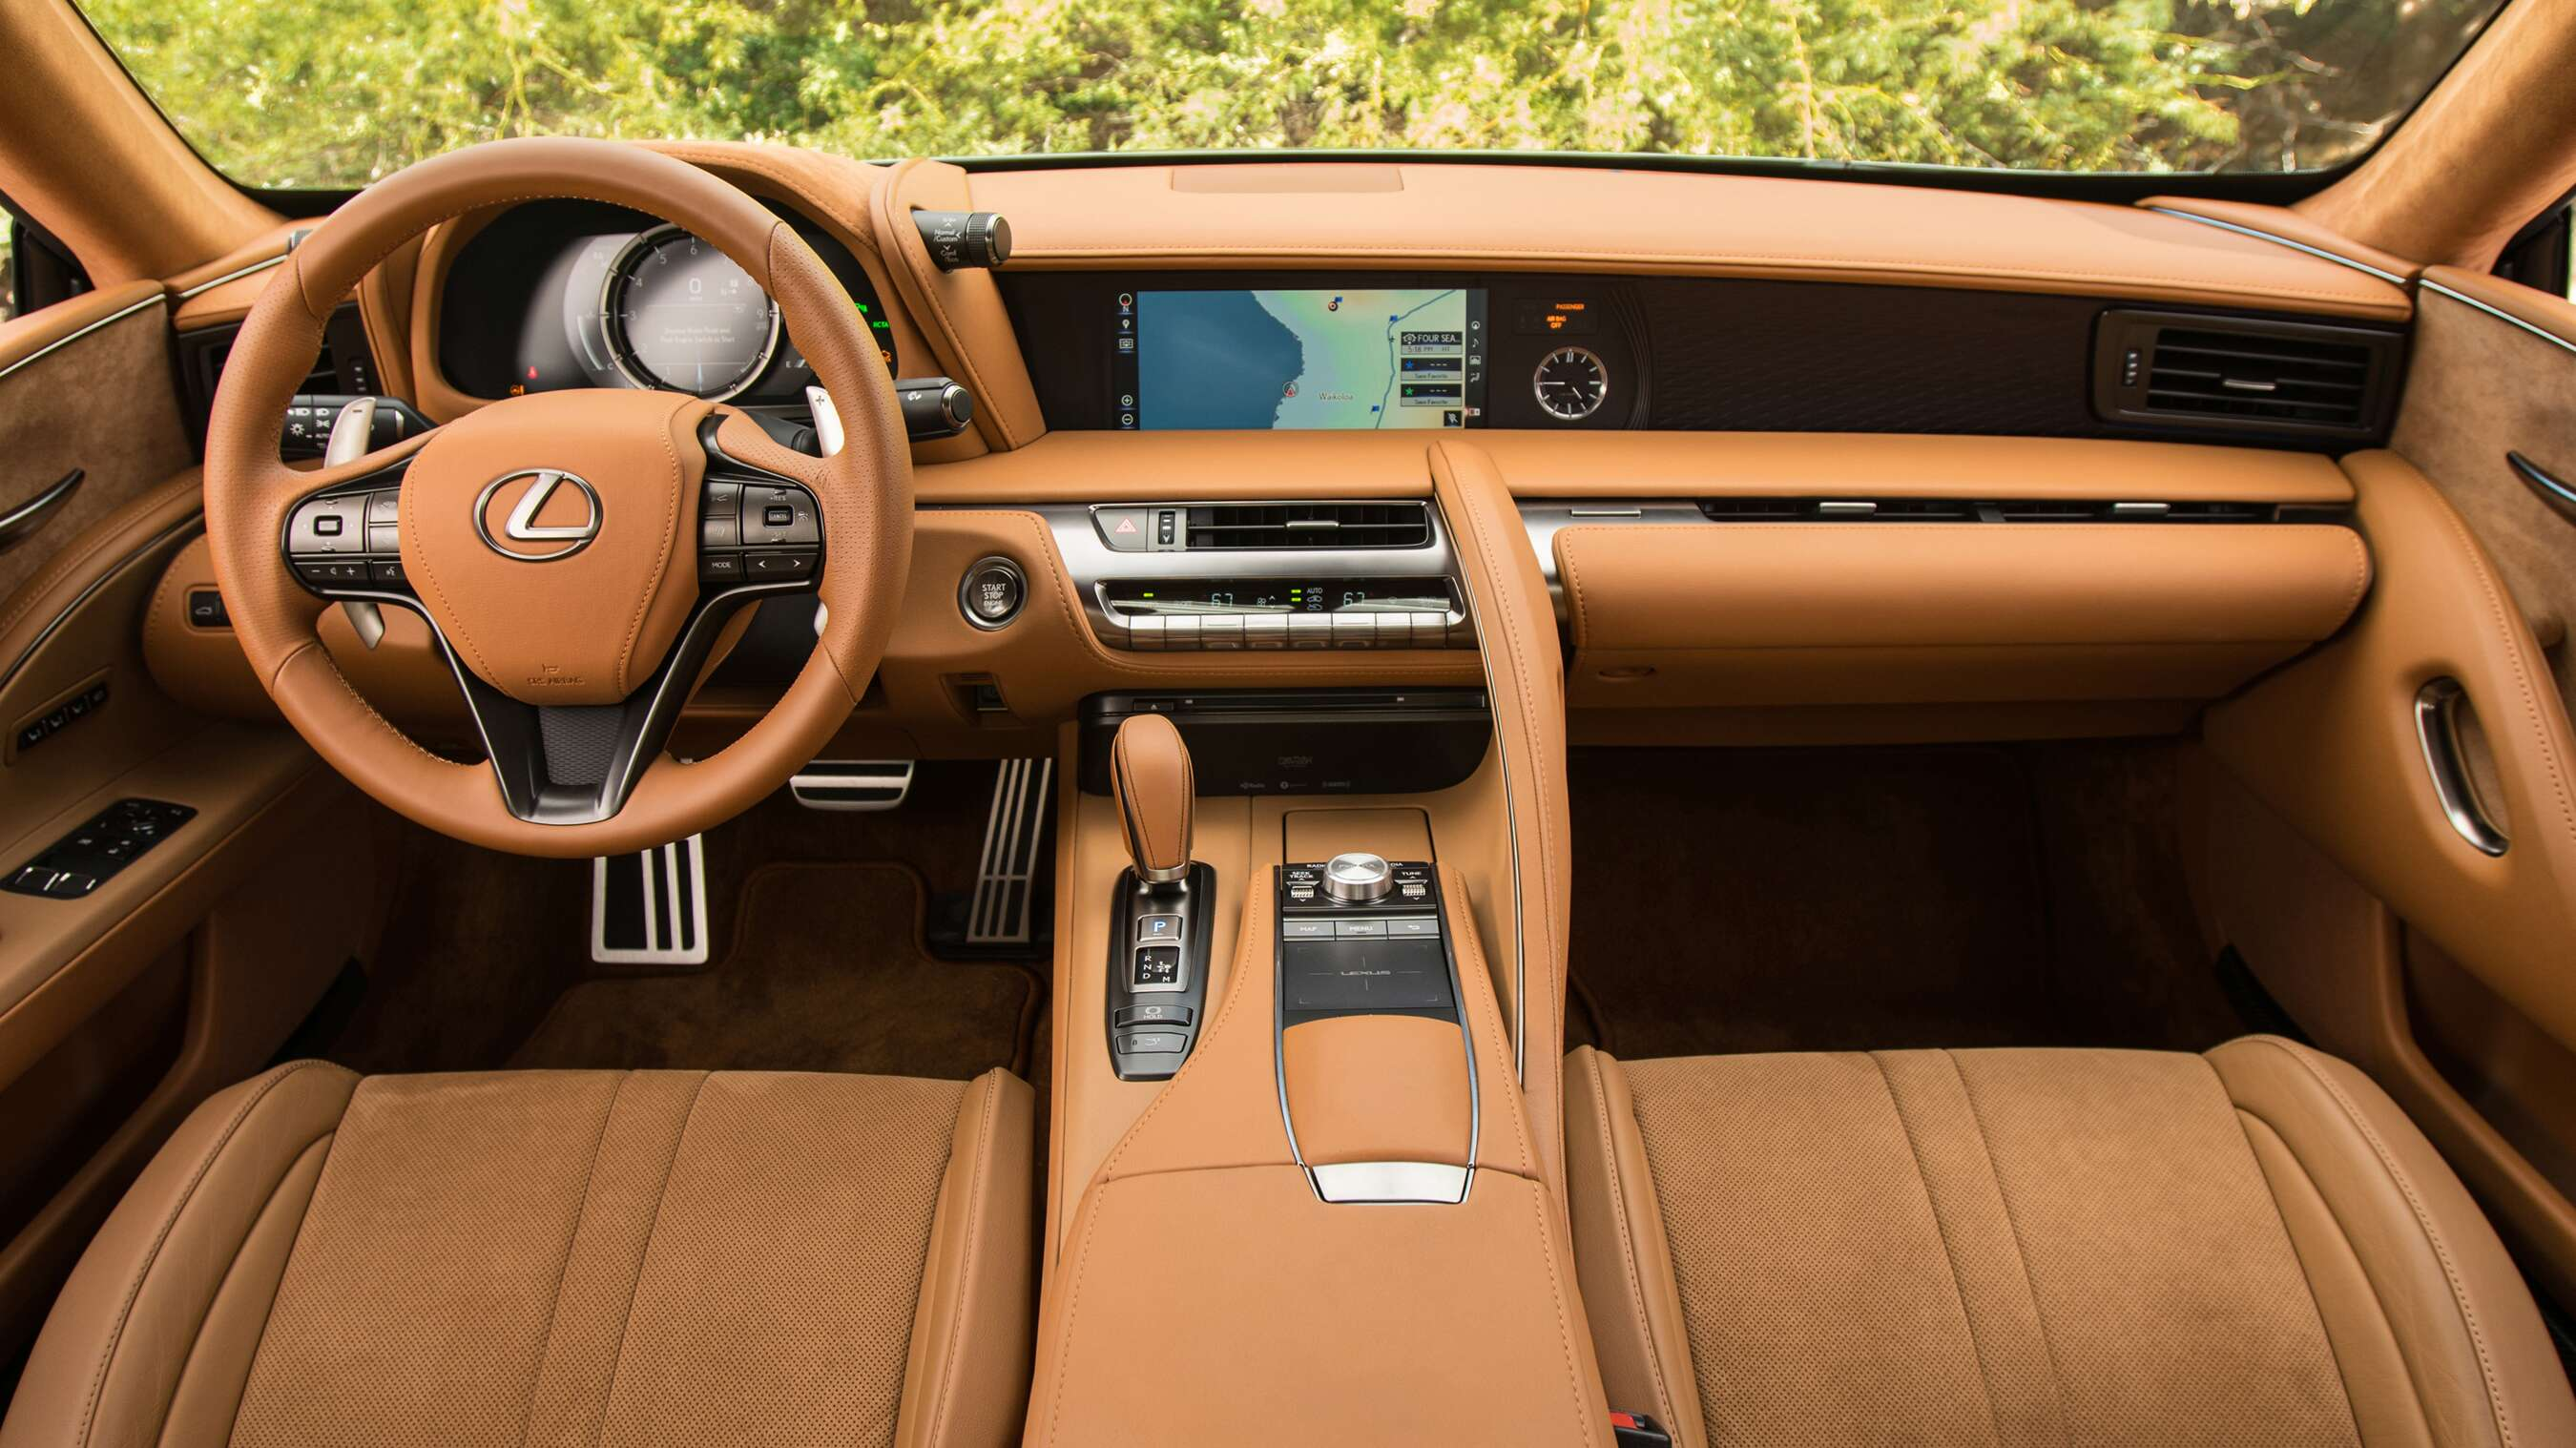 Car Interior Design: These Are The 10 Best New Car Interiors, According To